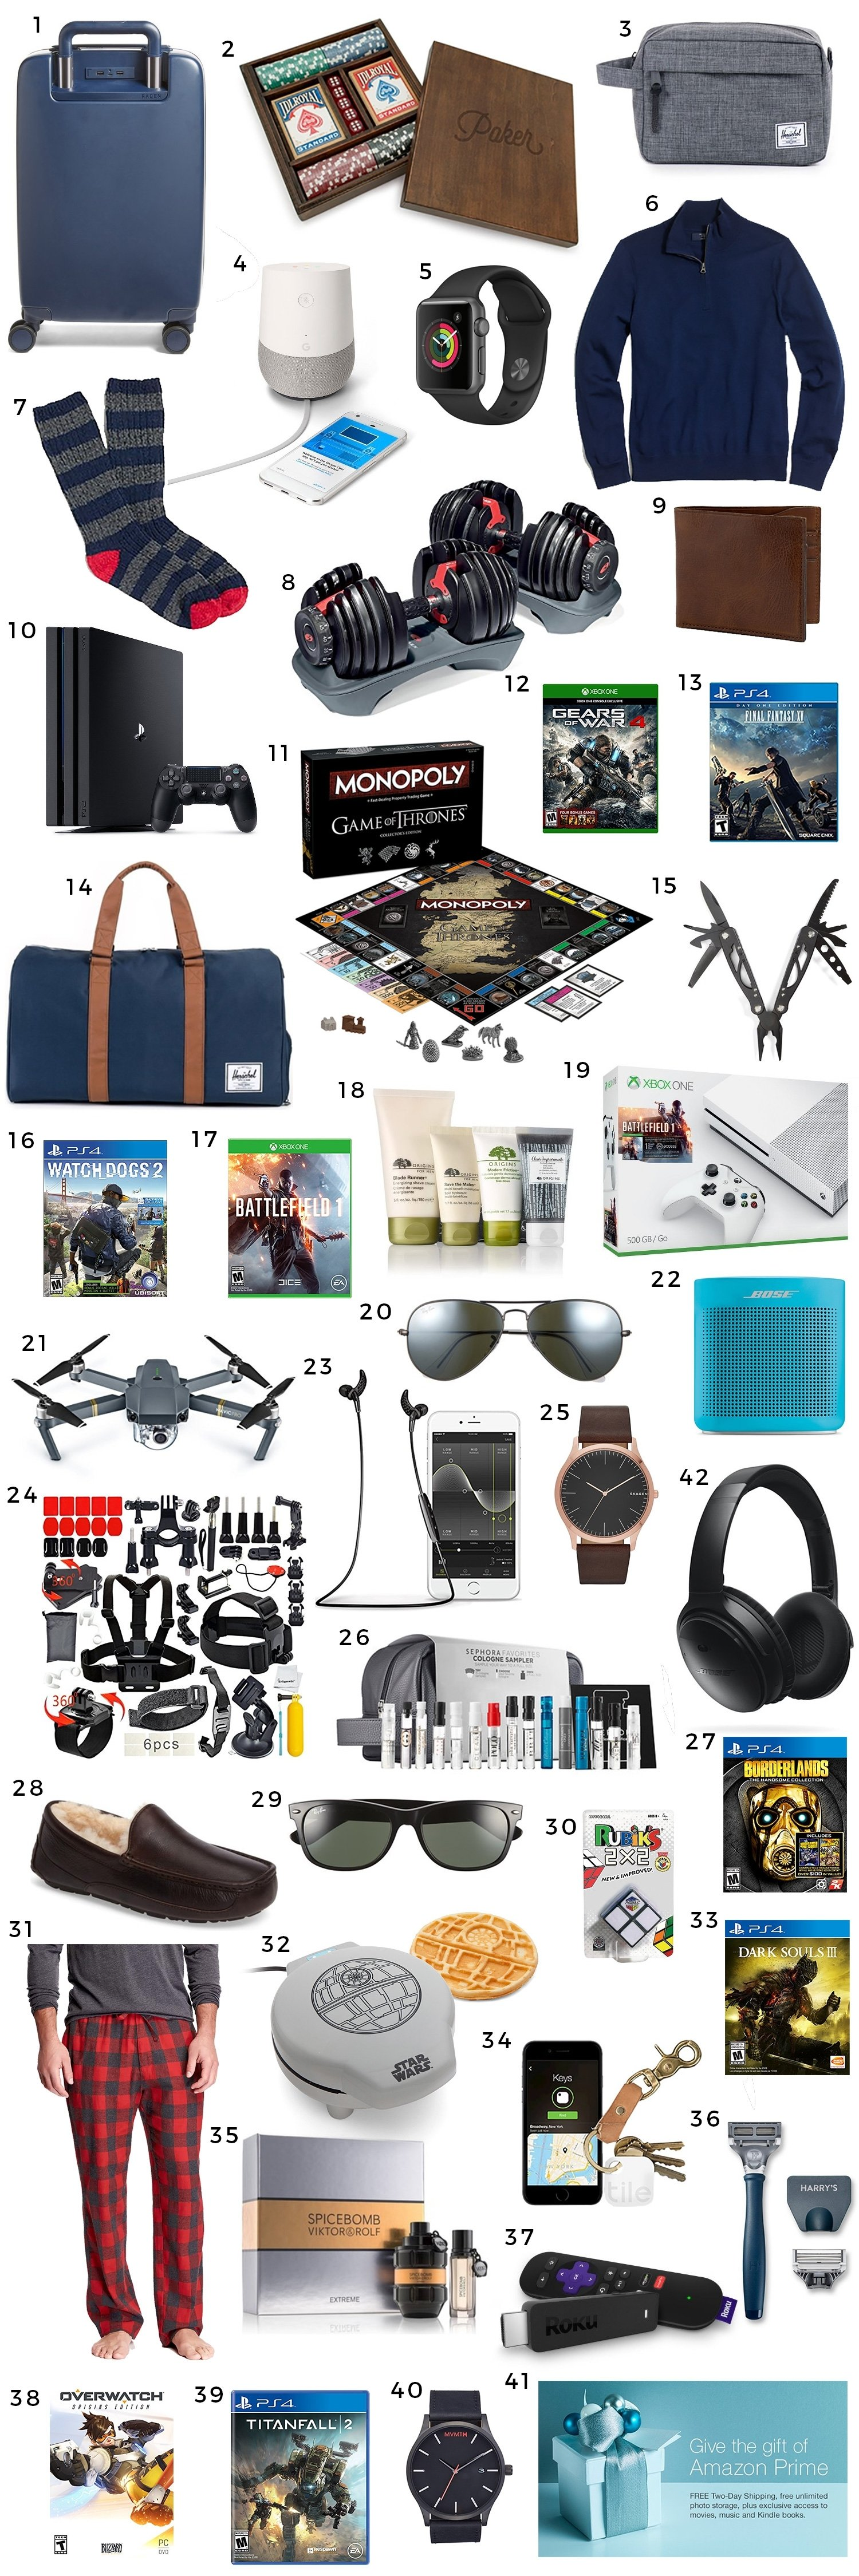 10 Great Gift Ideas For Boyfriend For Christmas 2021